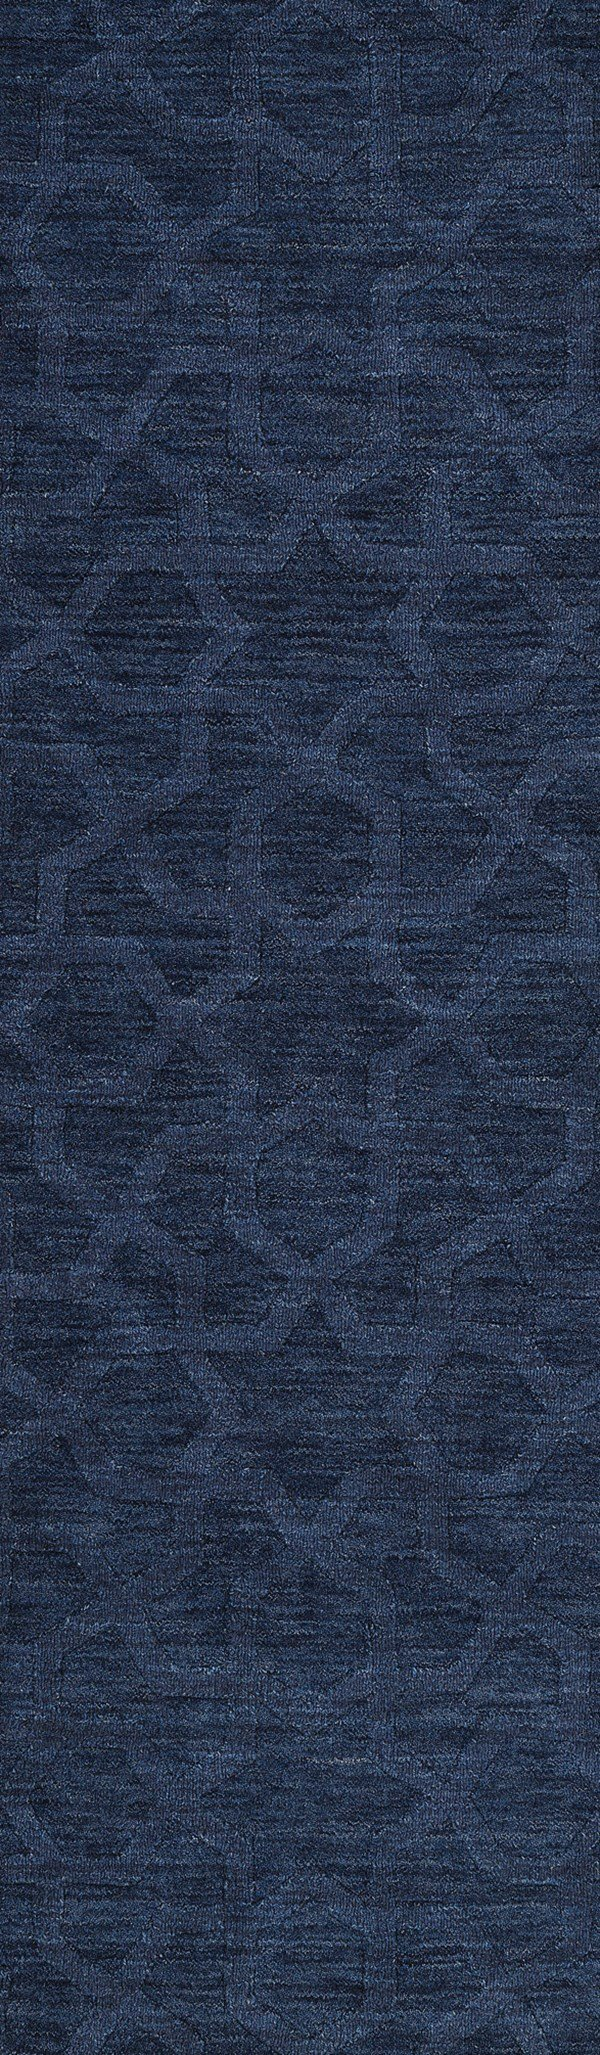 Navy (22) Textured Solid Area Rug